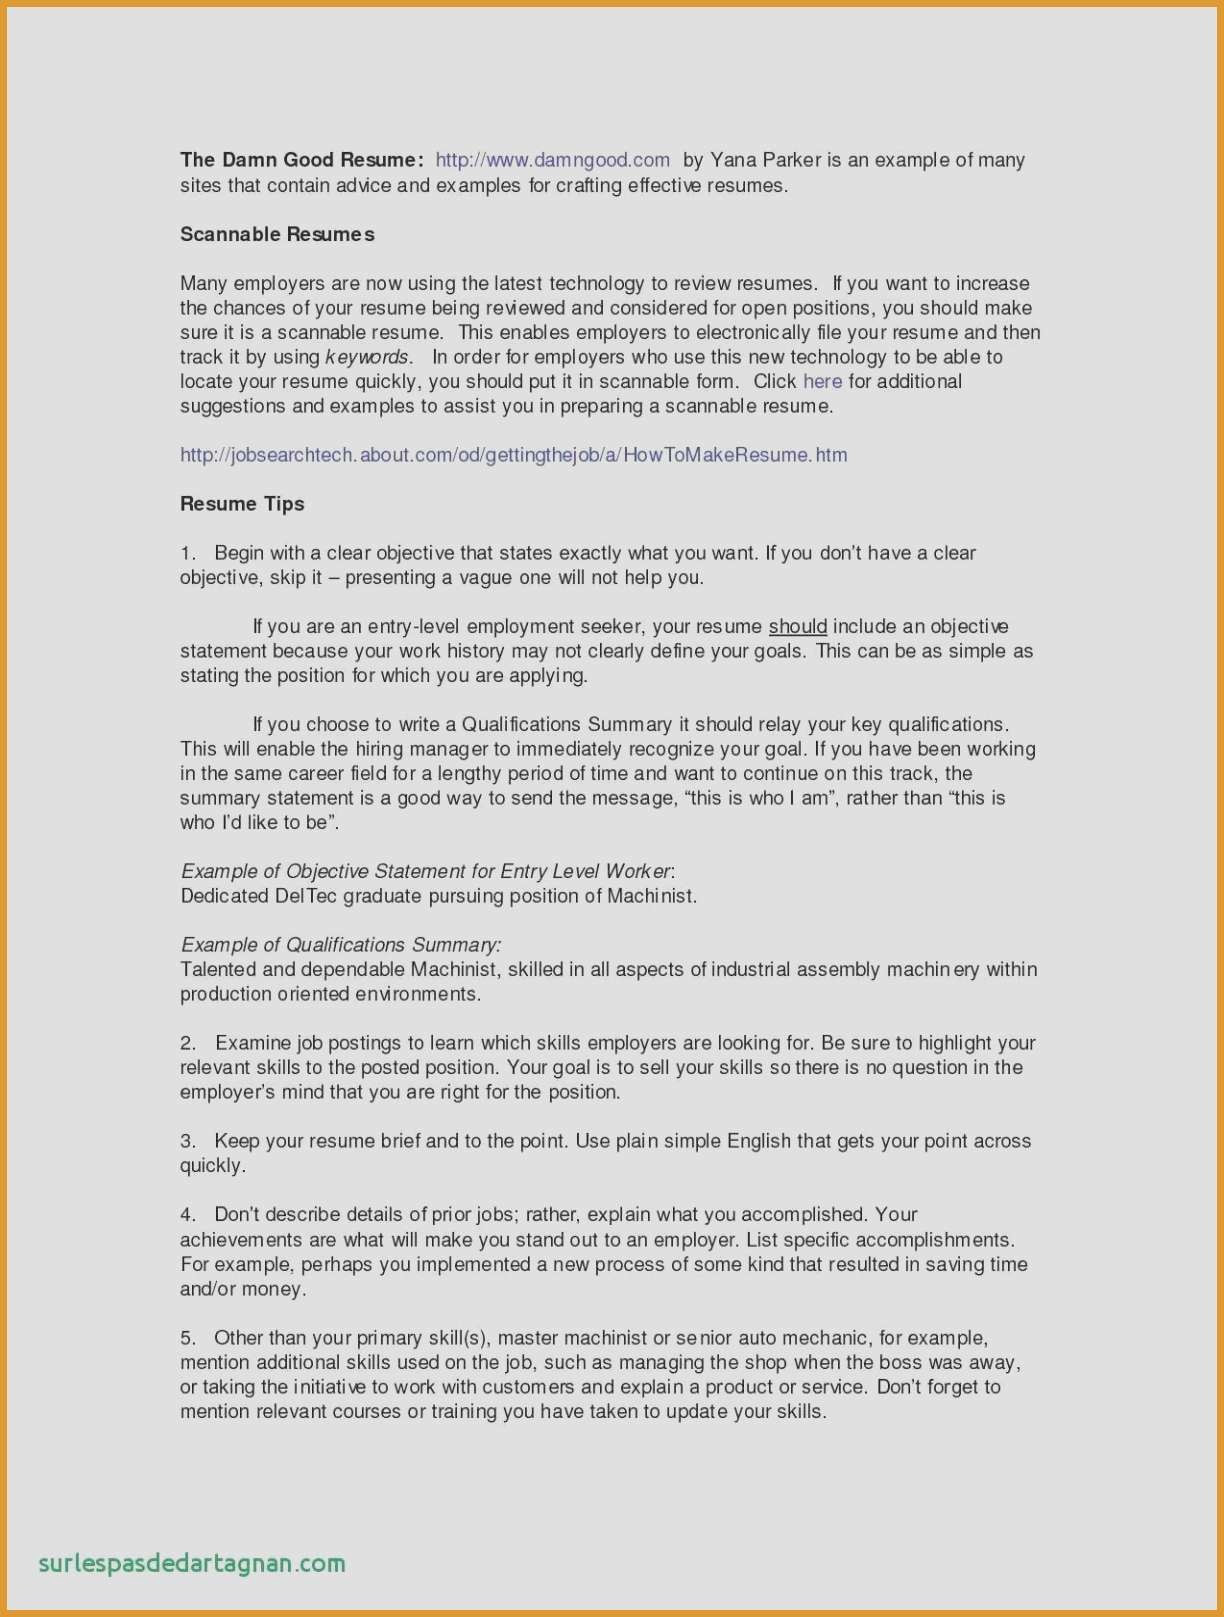 Resume without Work Experience - 85 Beautiful How to Write A Resume with No Work Experience